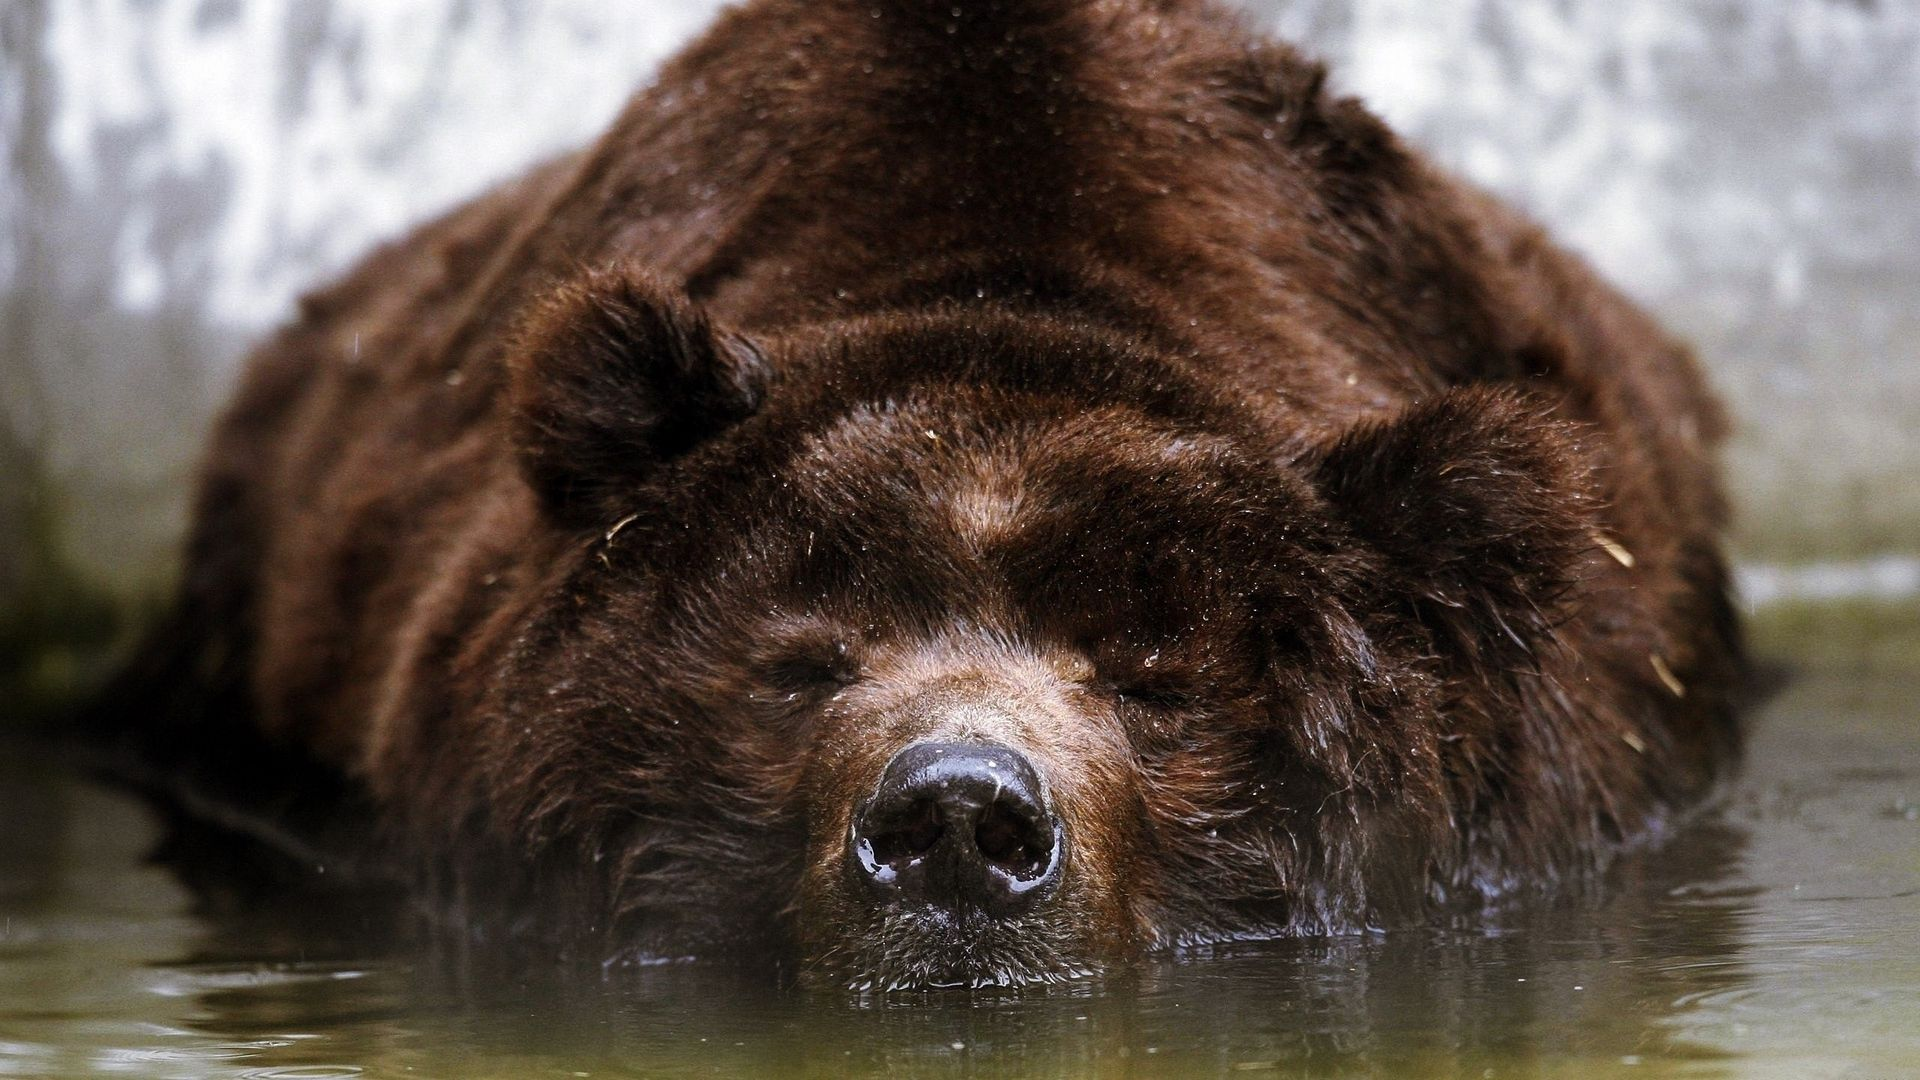 Download Bear, Brown, Swimming, Water, Face Wallpaper, Background